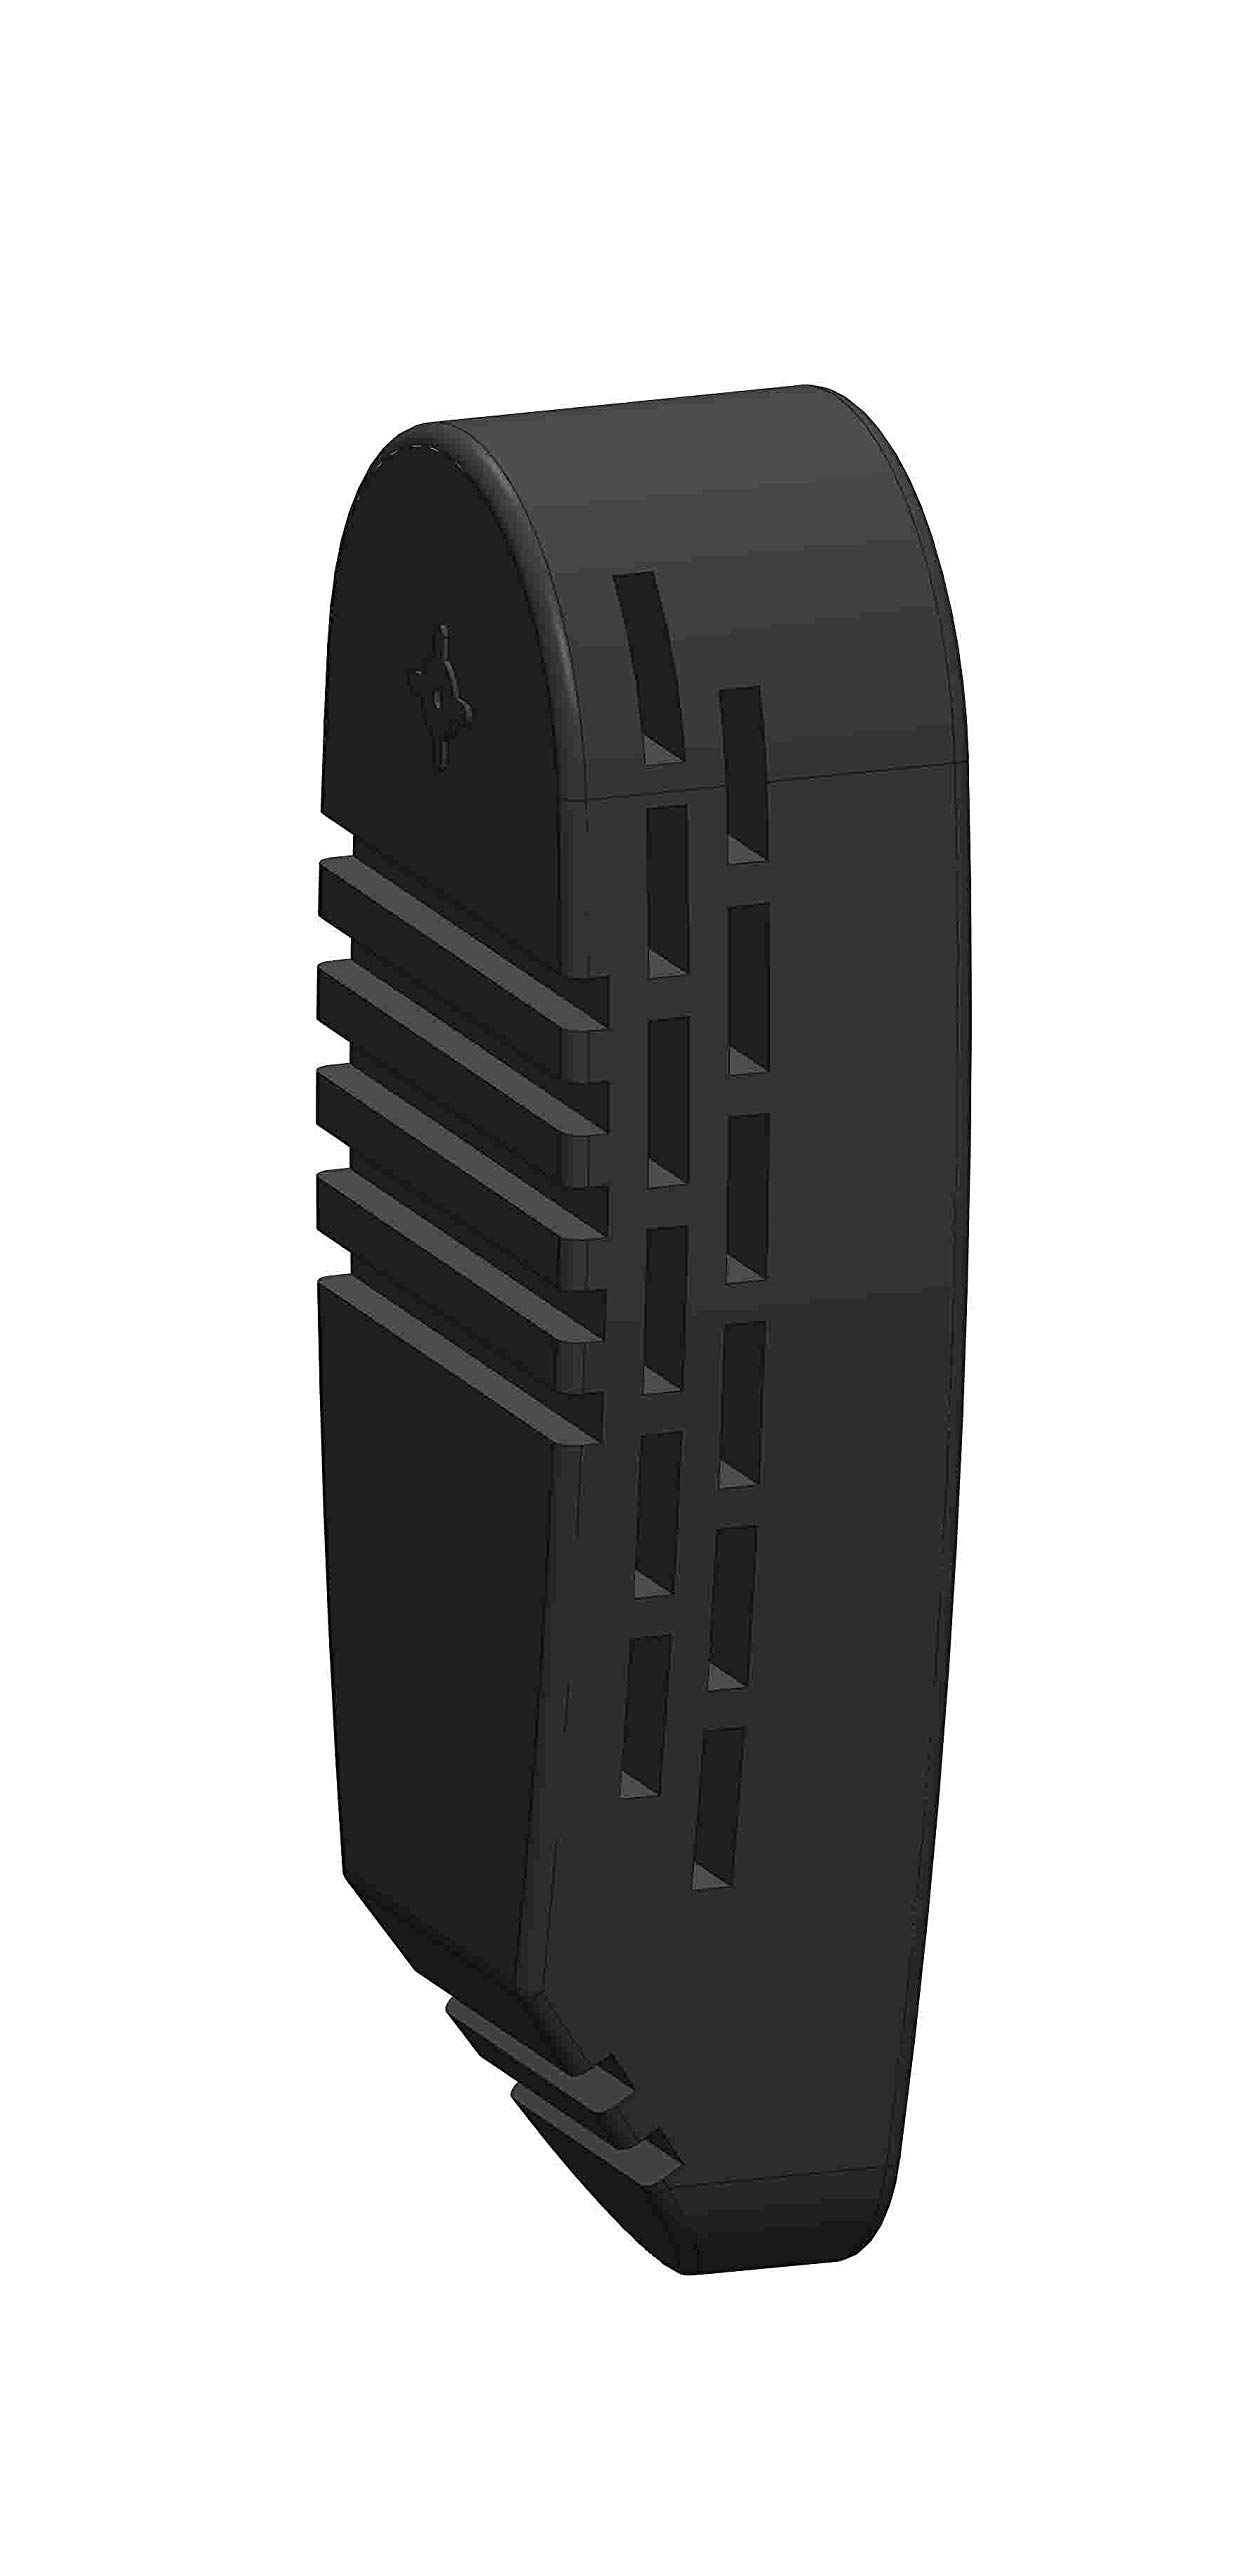 Missouri Tactical Products LLC A-Recoil Pad for 6-Position Adjustable Stocks by Missouri Tactical Products LLC